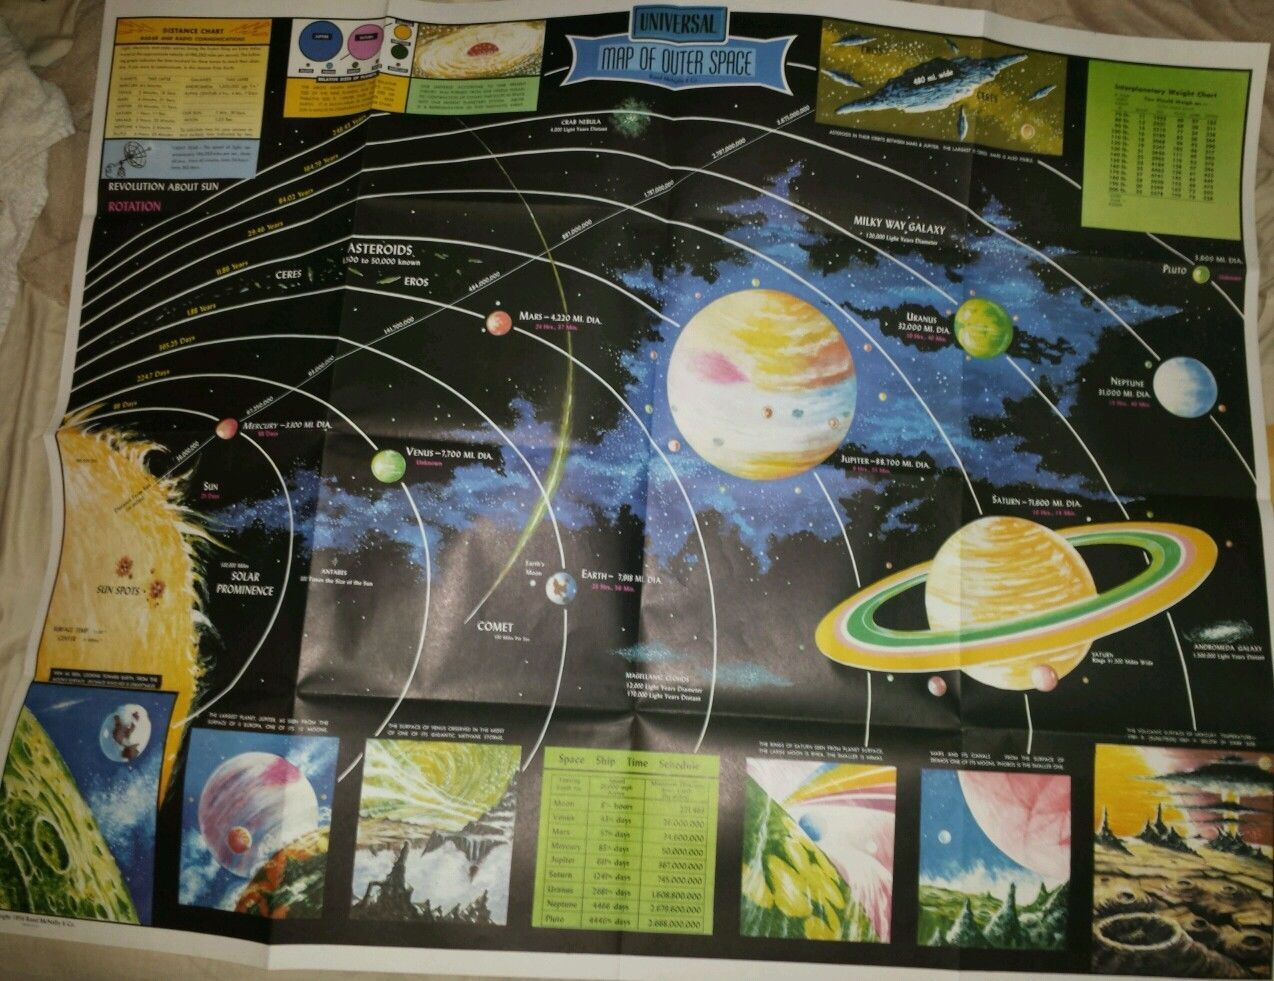 Remarkable, and Vintage space poster similar